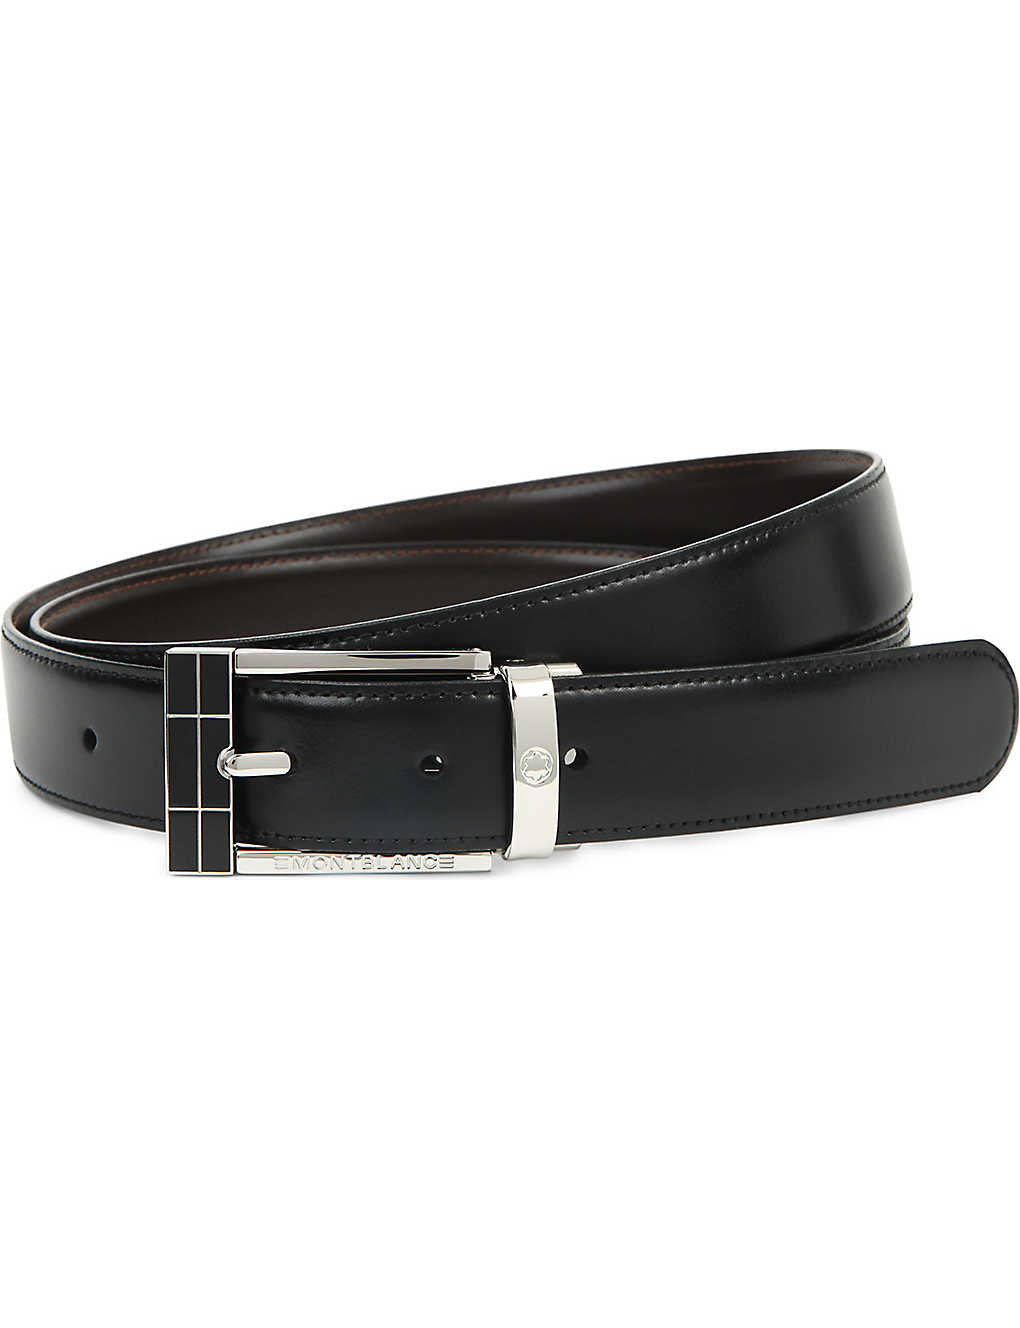 8d2606200bf MONTBLANC - Reversible leather belt